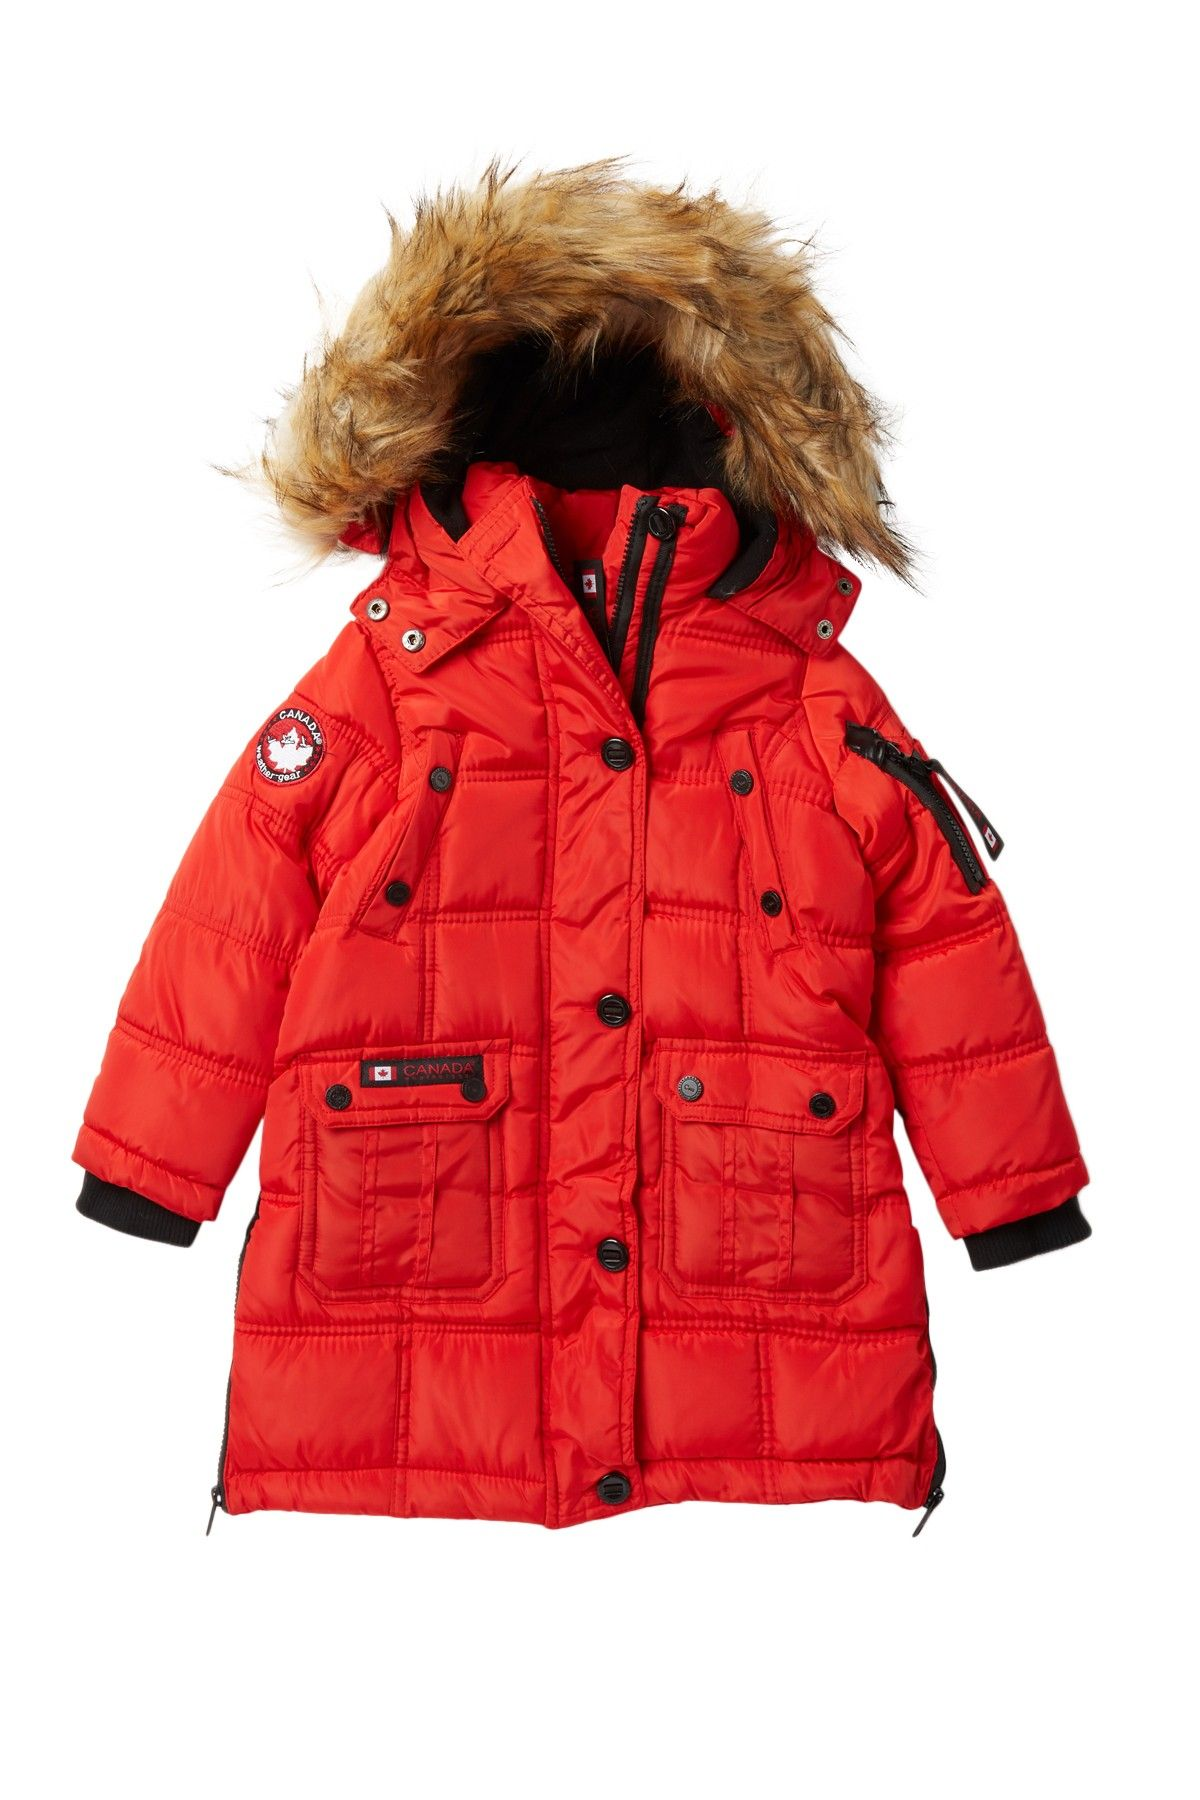 Canada Weather Gear Long Quilted Bubble Jacket With Faux Fur Nordstrom Rack Jackets Faux Fur Quilted [ 1800 x 1200 Pixel ]